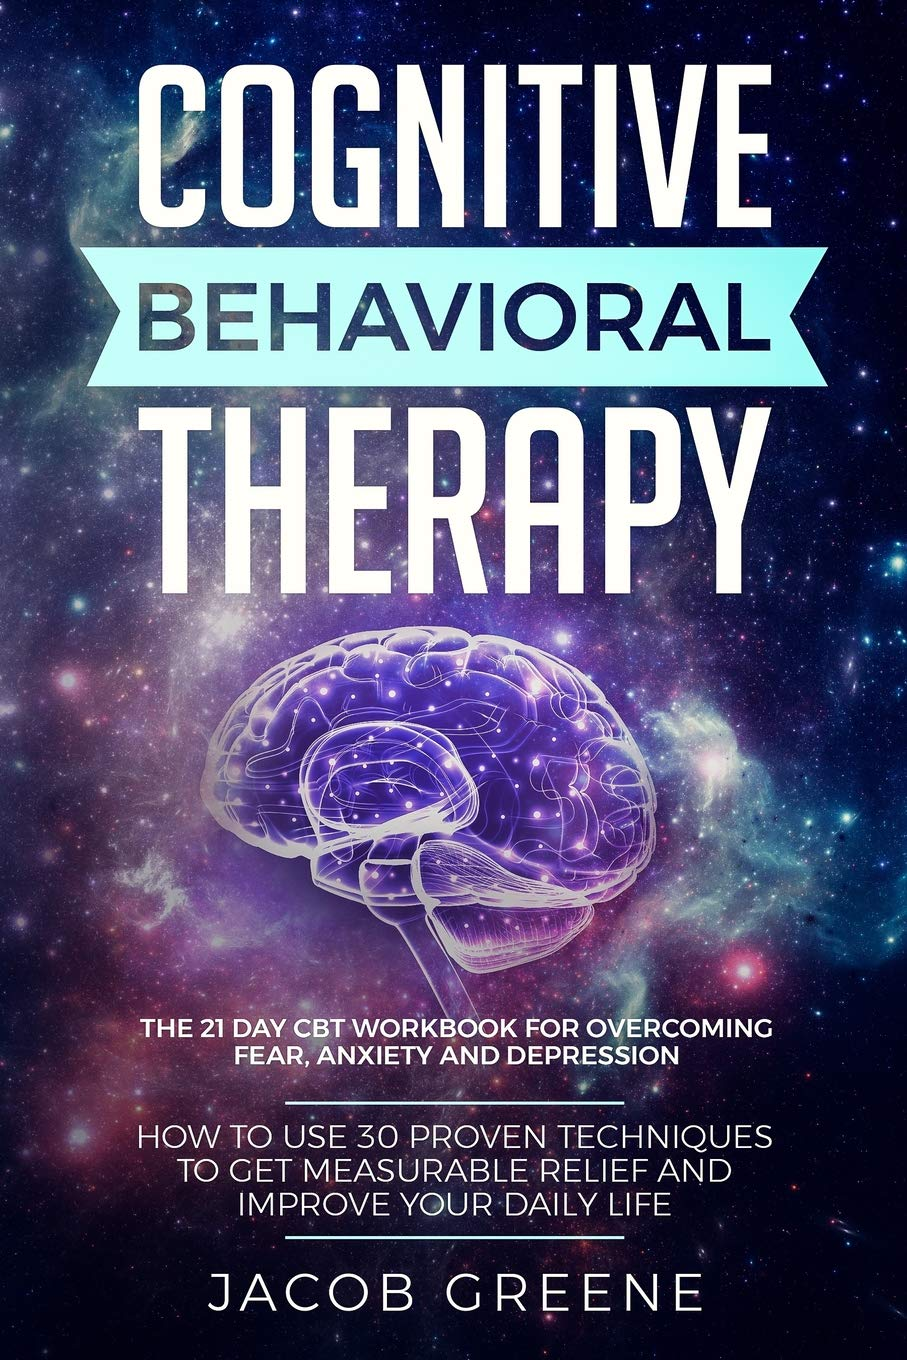 Cognitive Behavioral Therapy : The 21 Day CBT Workbook for Overcoming Fear,  Anxiety And Depression: How To Use 30 Proven Techniques To Get Measurable  Relief and Improve Your Daily Life: Greene, Jacob: